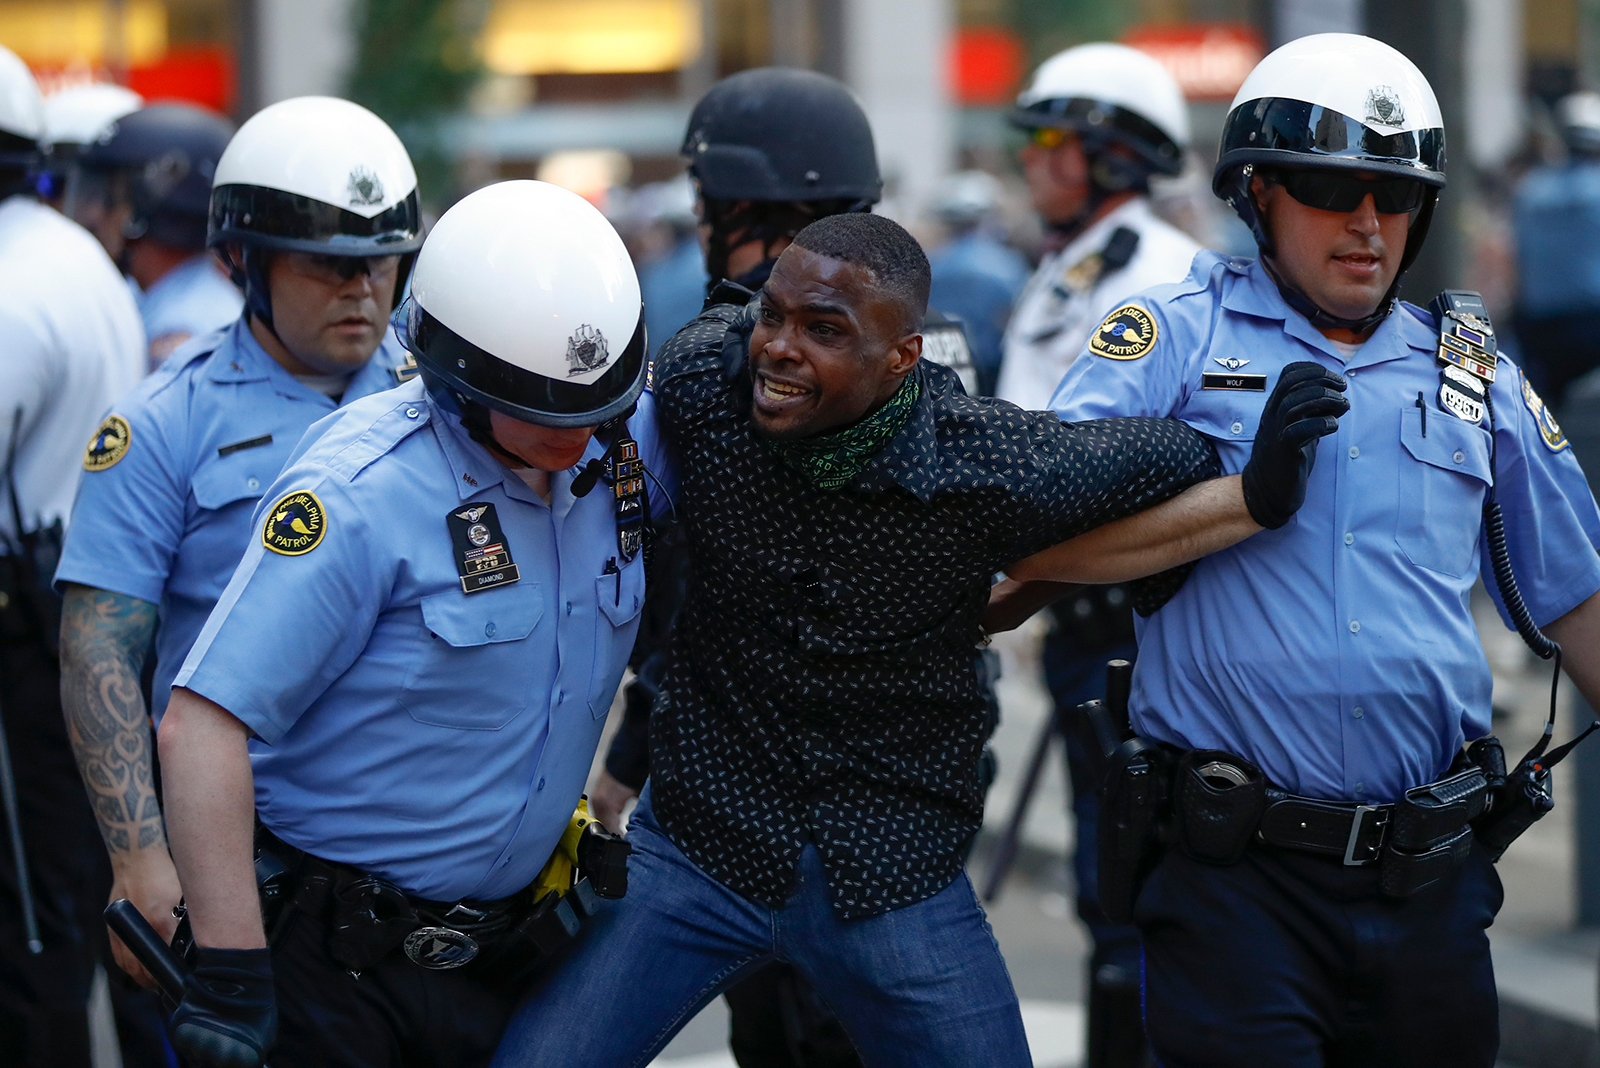 Philadelphia police restrain a man during the Justice for George Floyd Philadelphia Protest on Saturday, May 30.